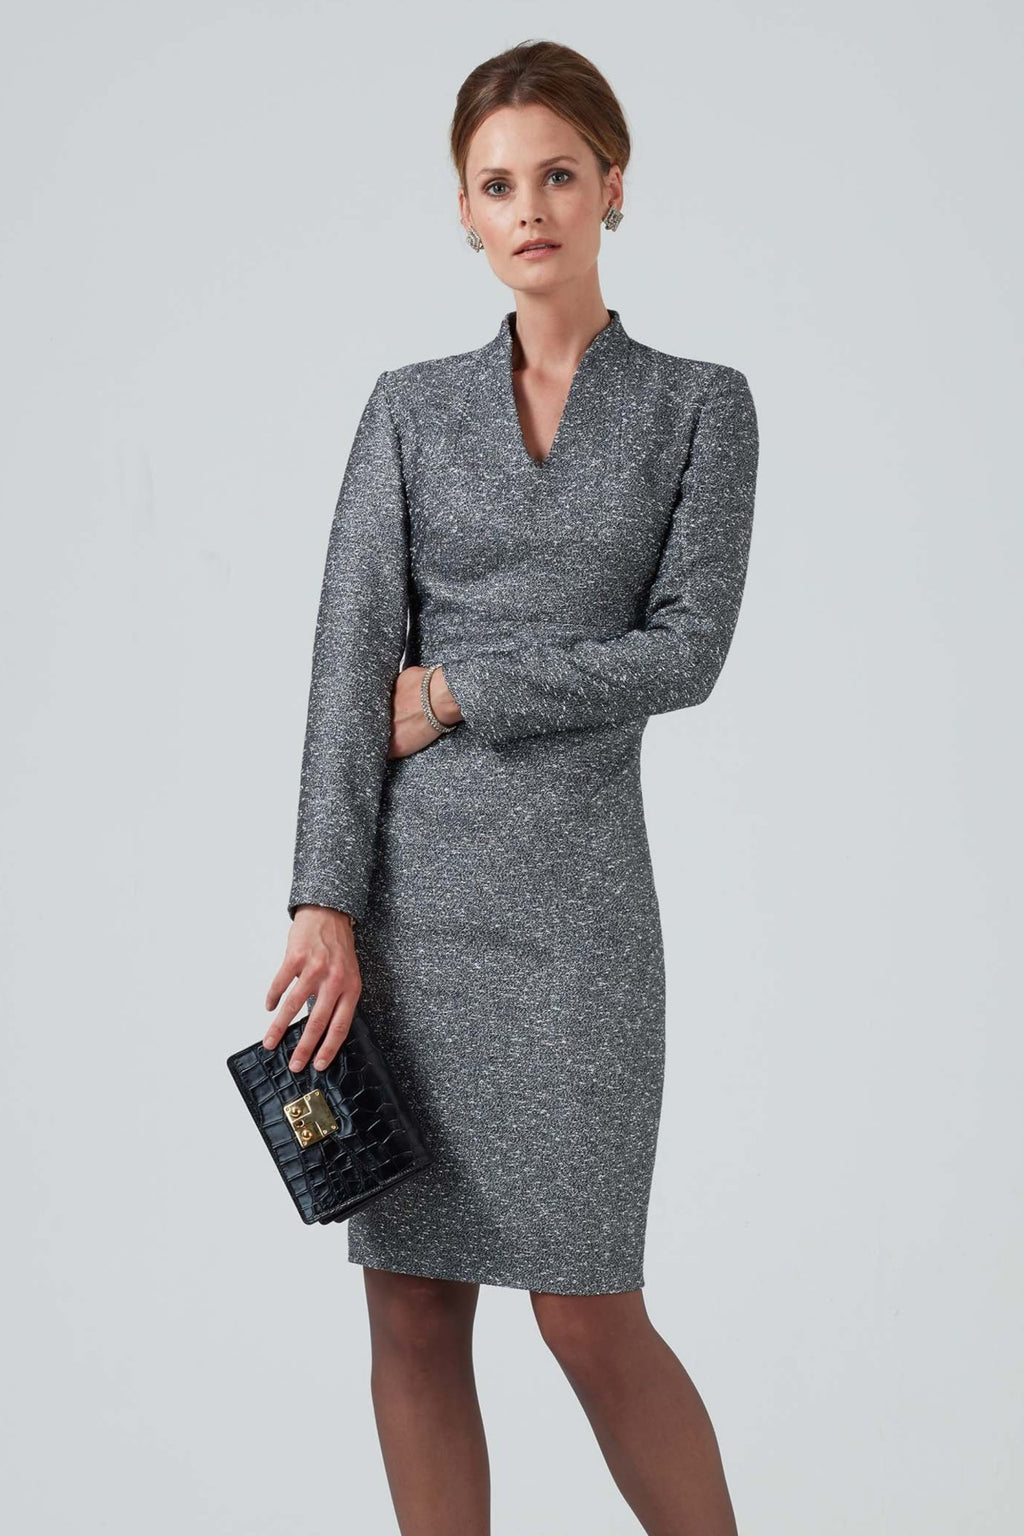 Silver textured dress in light weight tweed - Emma